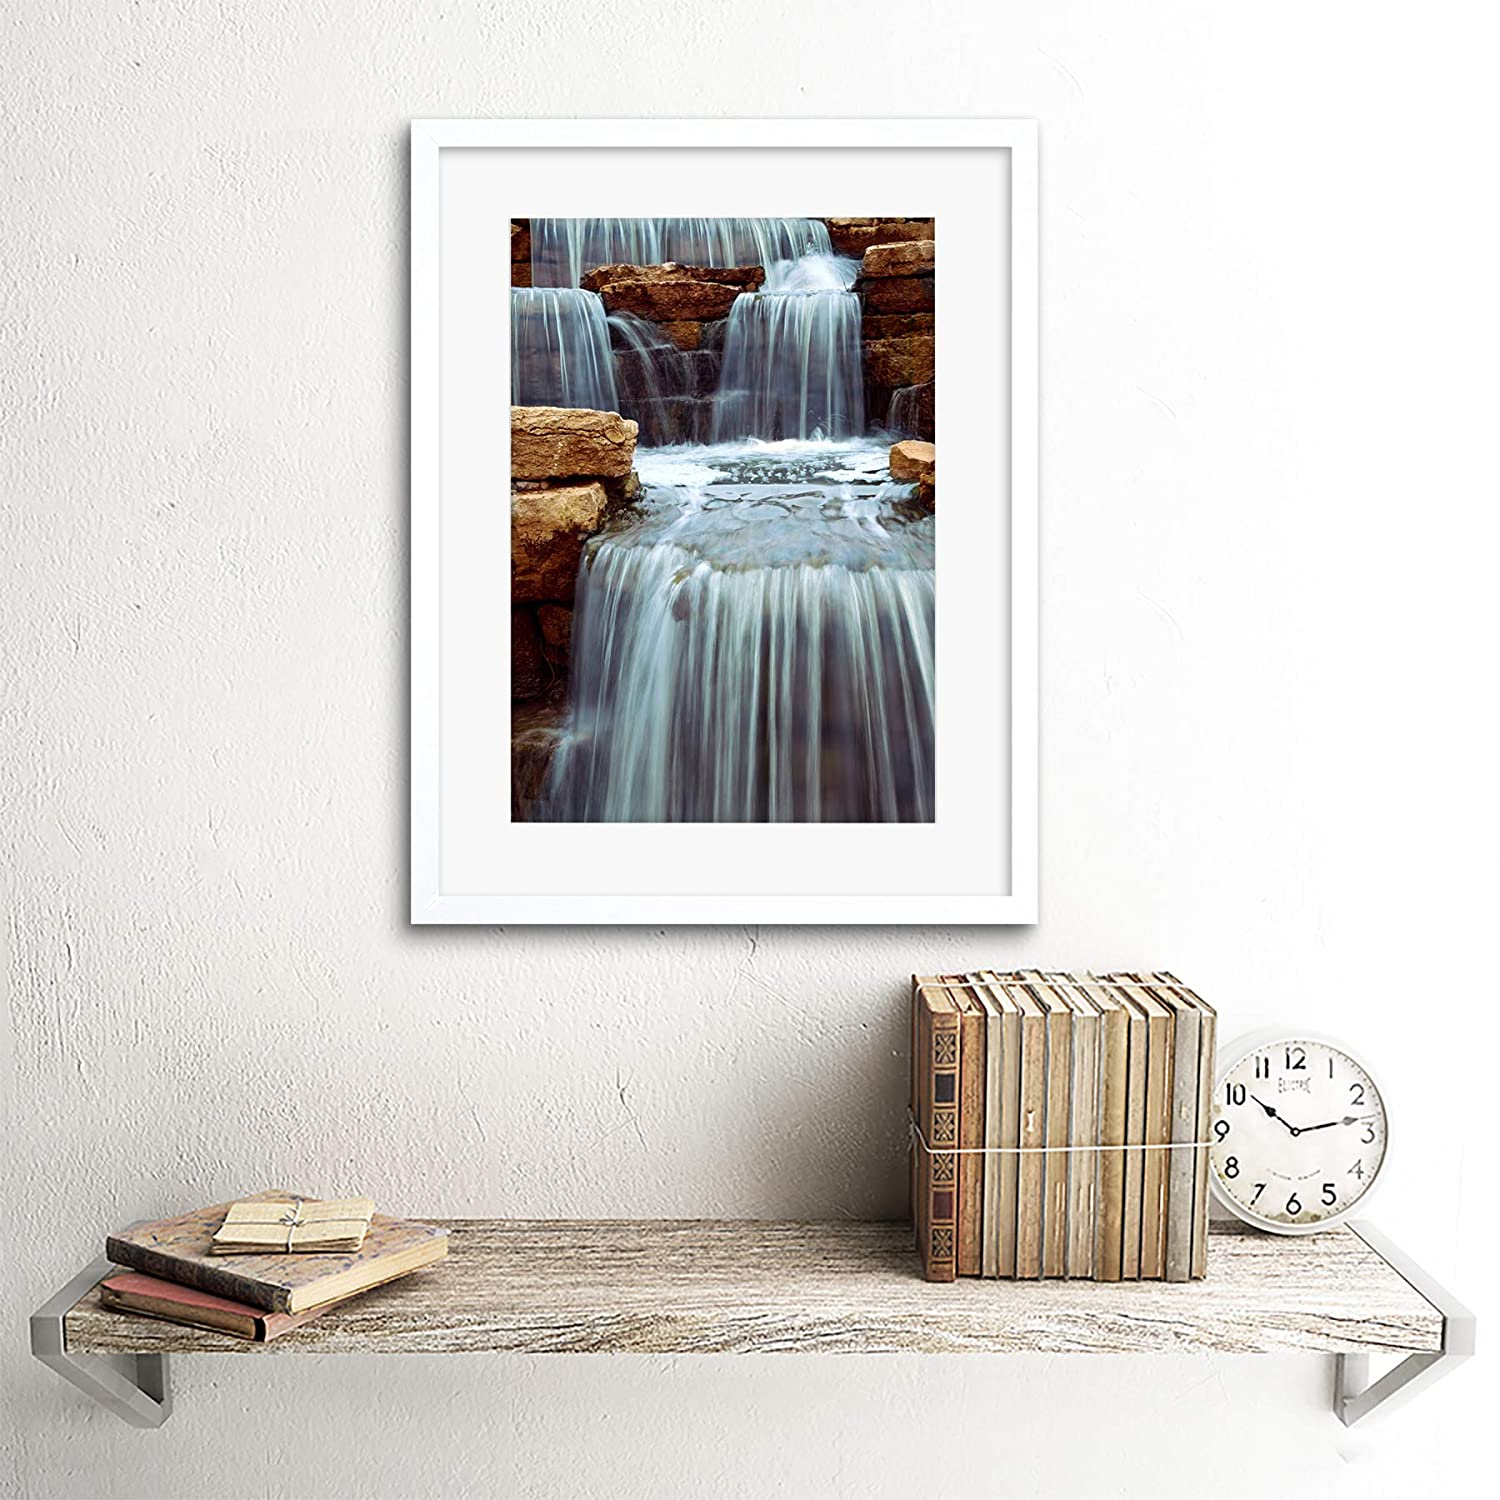 CASCADING WATERFALL OVER NATURAL ROCKS HOME BLACK FRAMED ART PRINT B12X9483